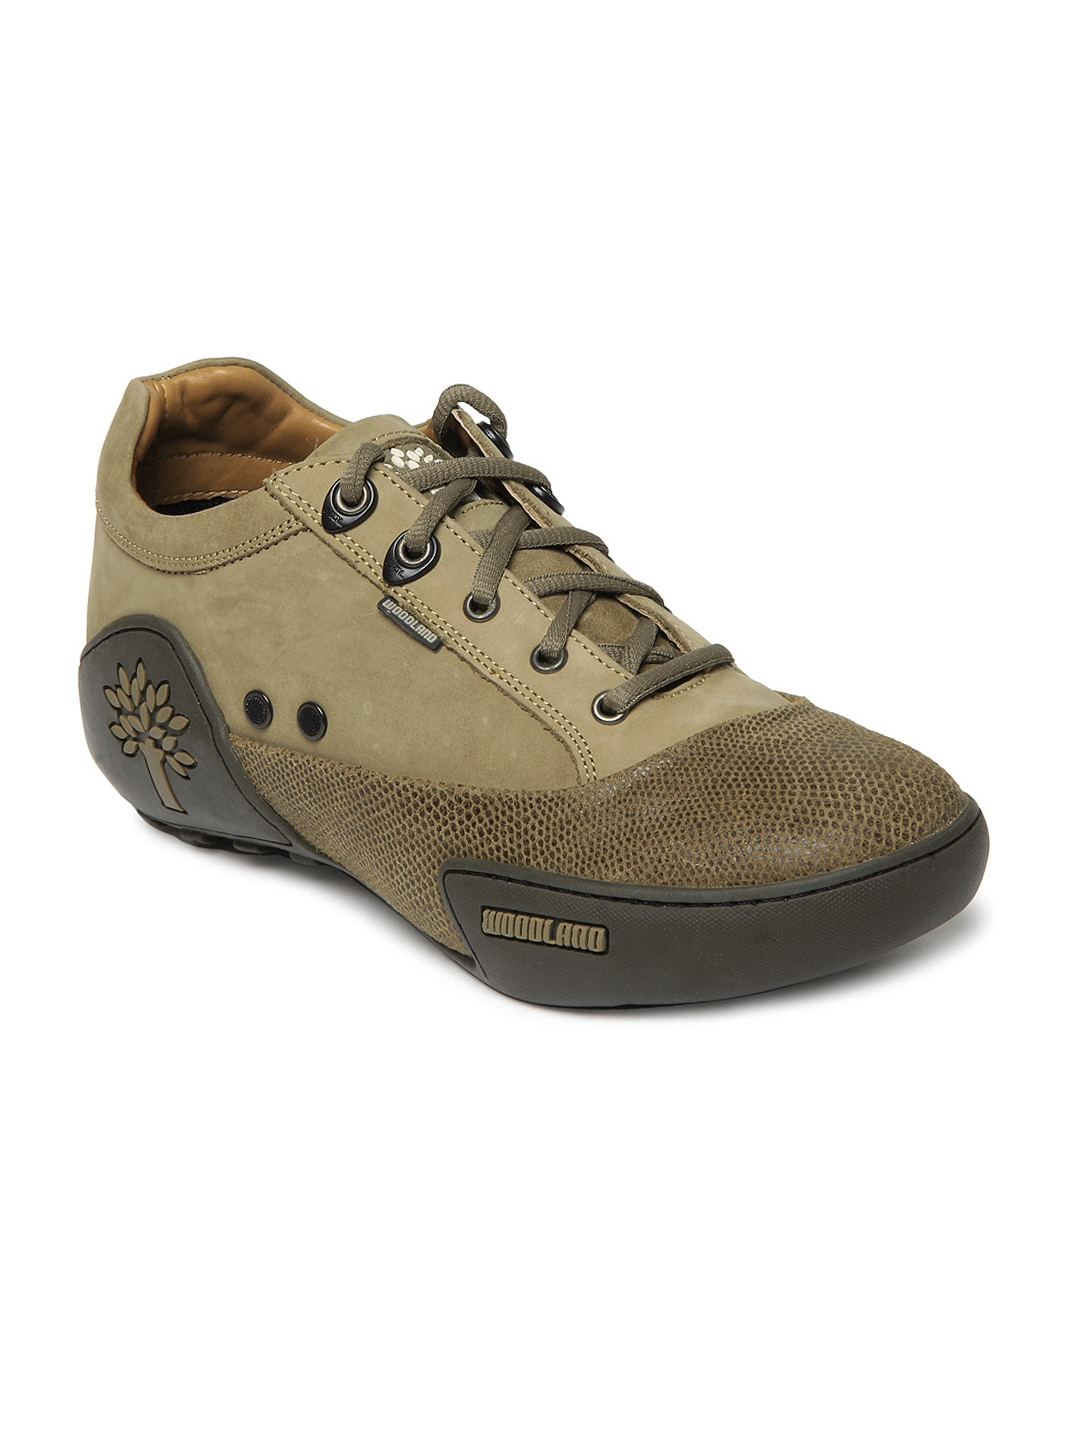 woodland men Rugged exposure woodland men's hiking boots this lightweight hiker transitions well from the city streets to paths less traveled great for light day hiking.